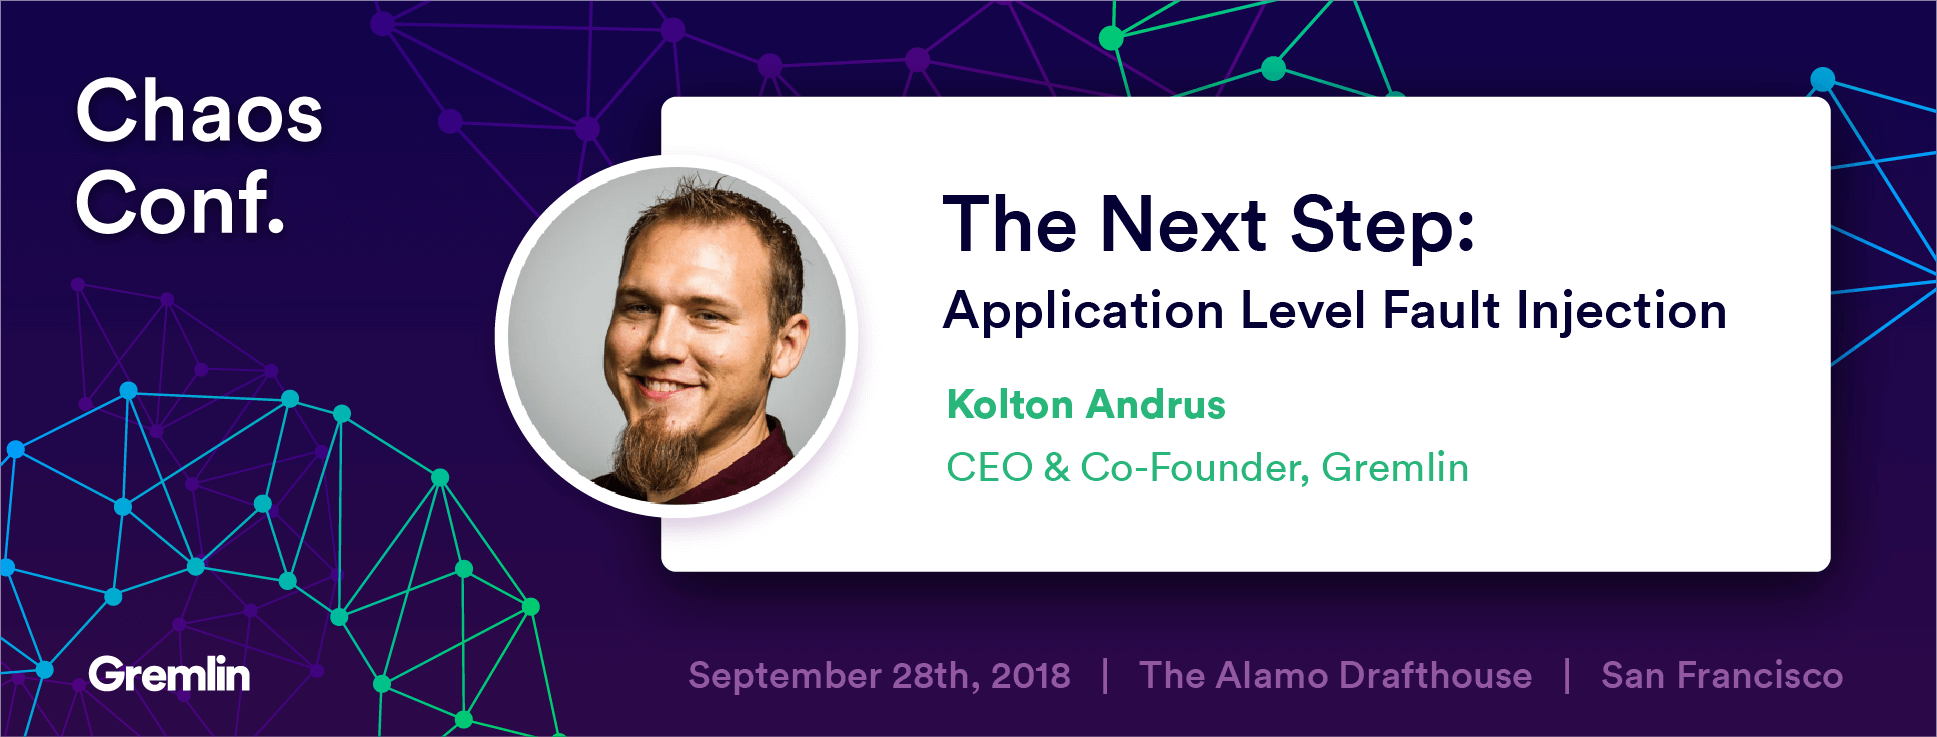 """Transcript: Kolton Andrus: """"The Next Step: Application Level Fault Injection"""" - Chaos Conf 2018"""